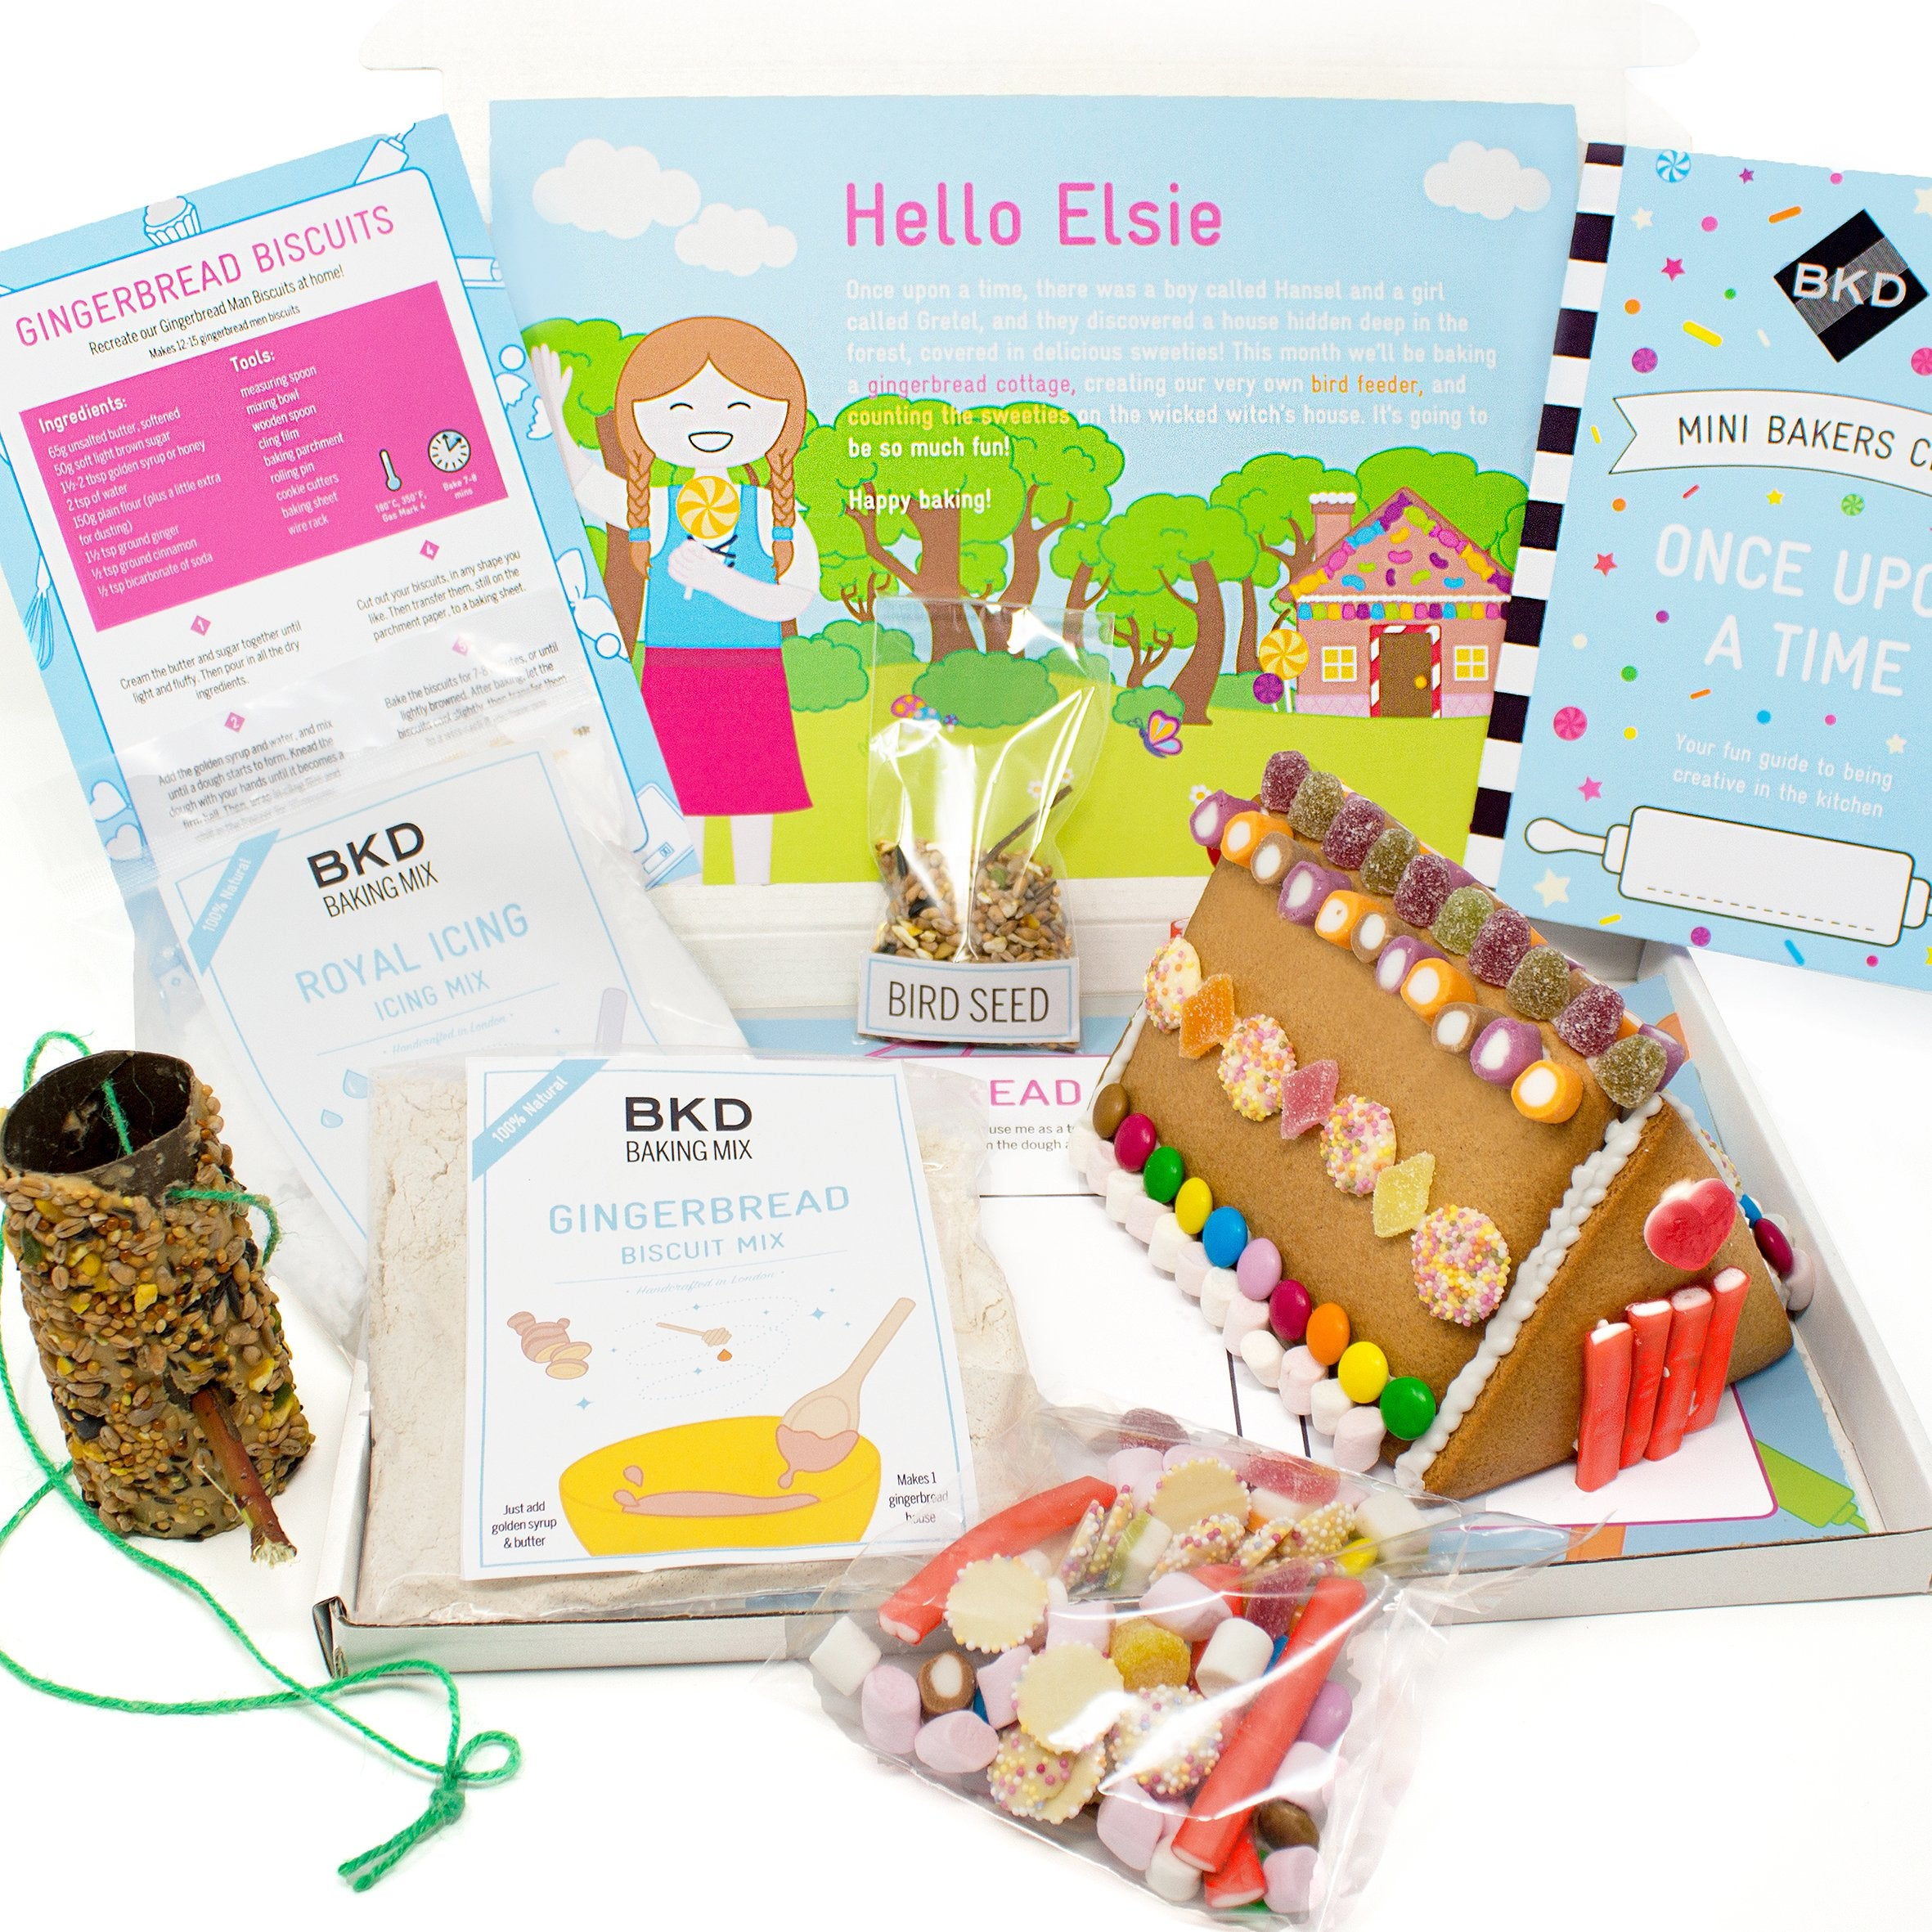 Mini Bakers Club | Monthly Subscription - £9.99 a month - BKD